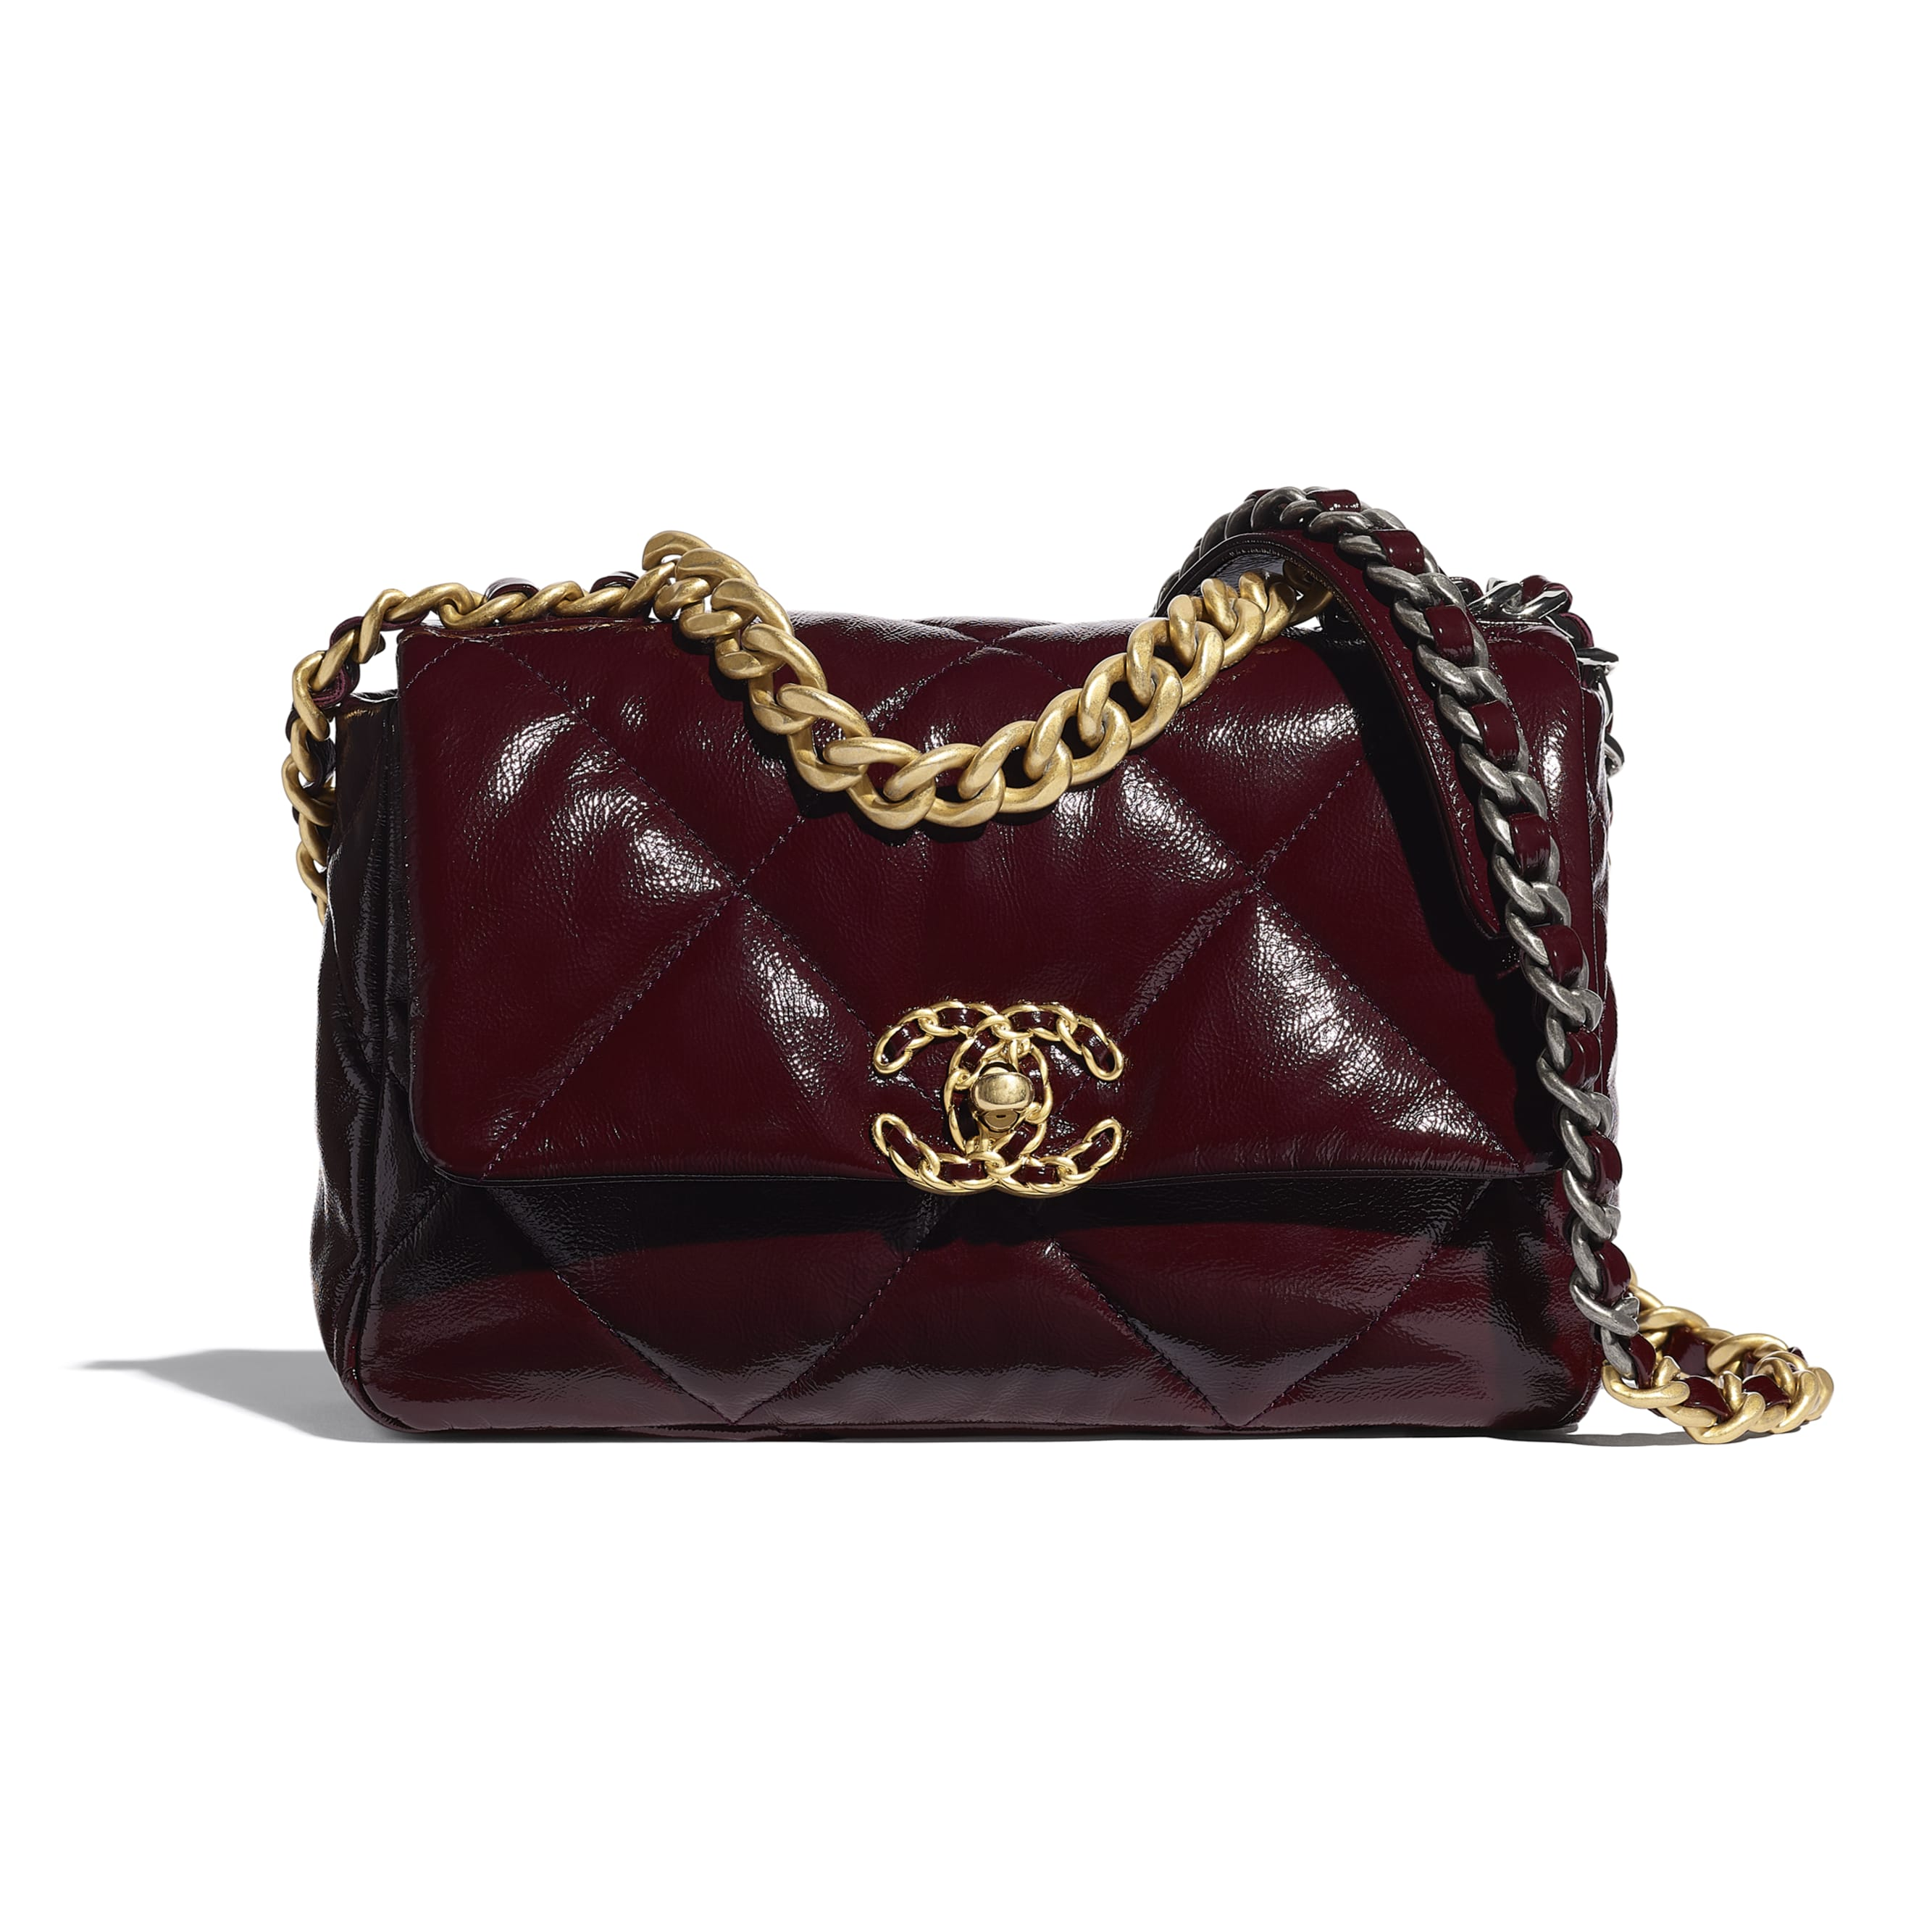 CHANEL 19 Flap Bag - Burgundy - Shiny Crumpled Calfskin, Gold-Tone, Silver-Tone & Ruthenium-Finish Metal - CHANEL - Default view - see standard sized version